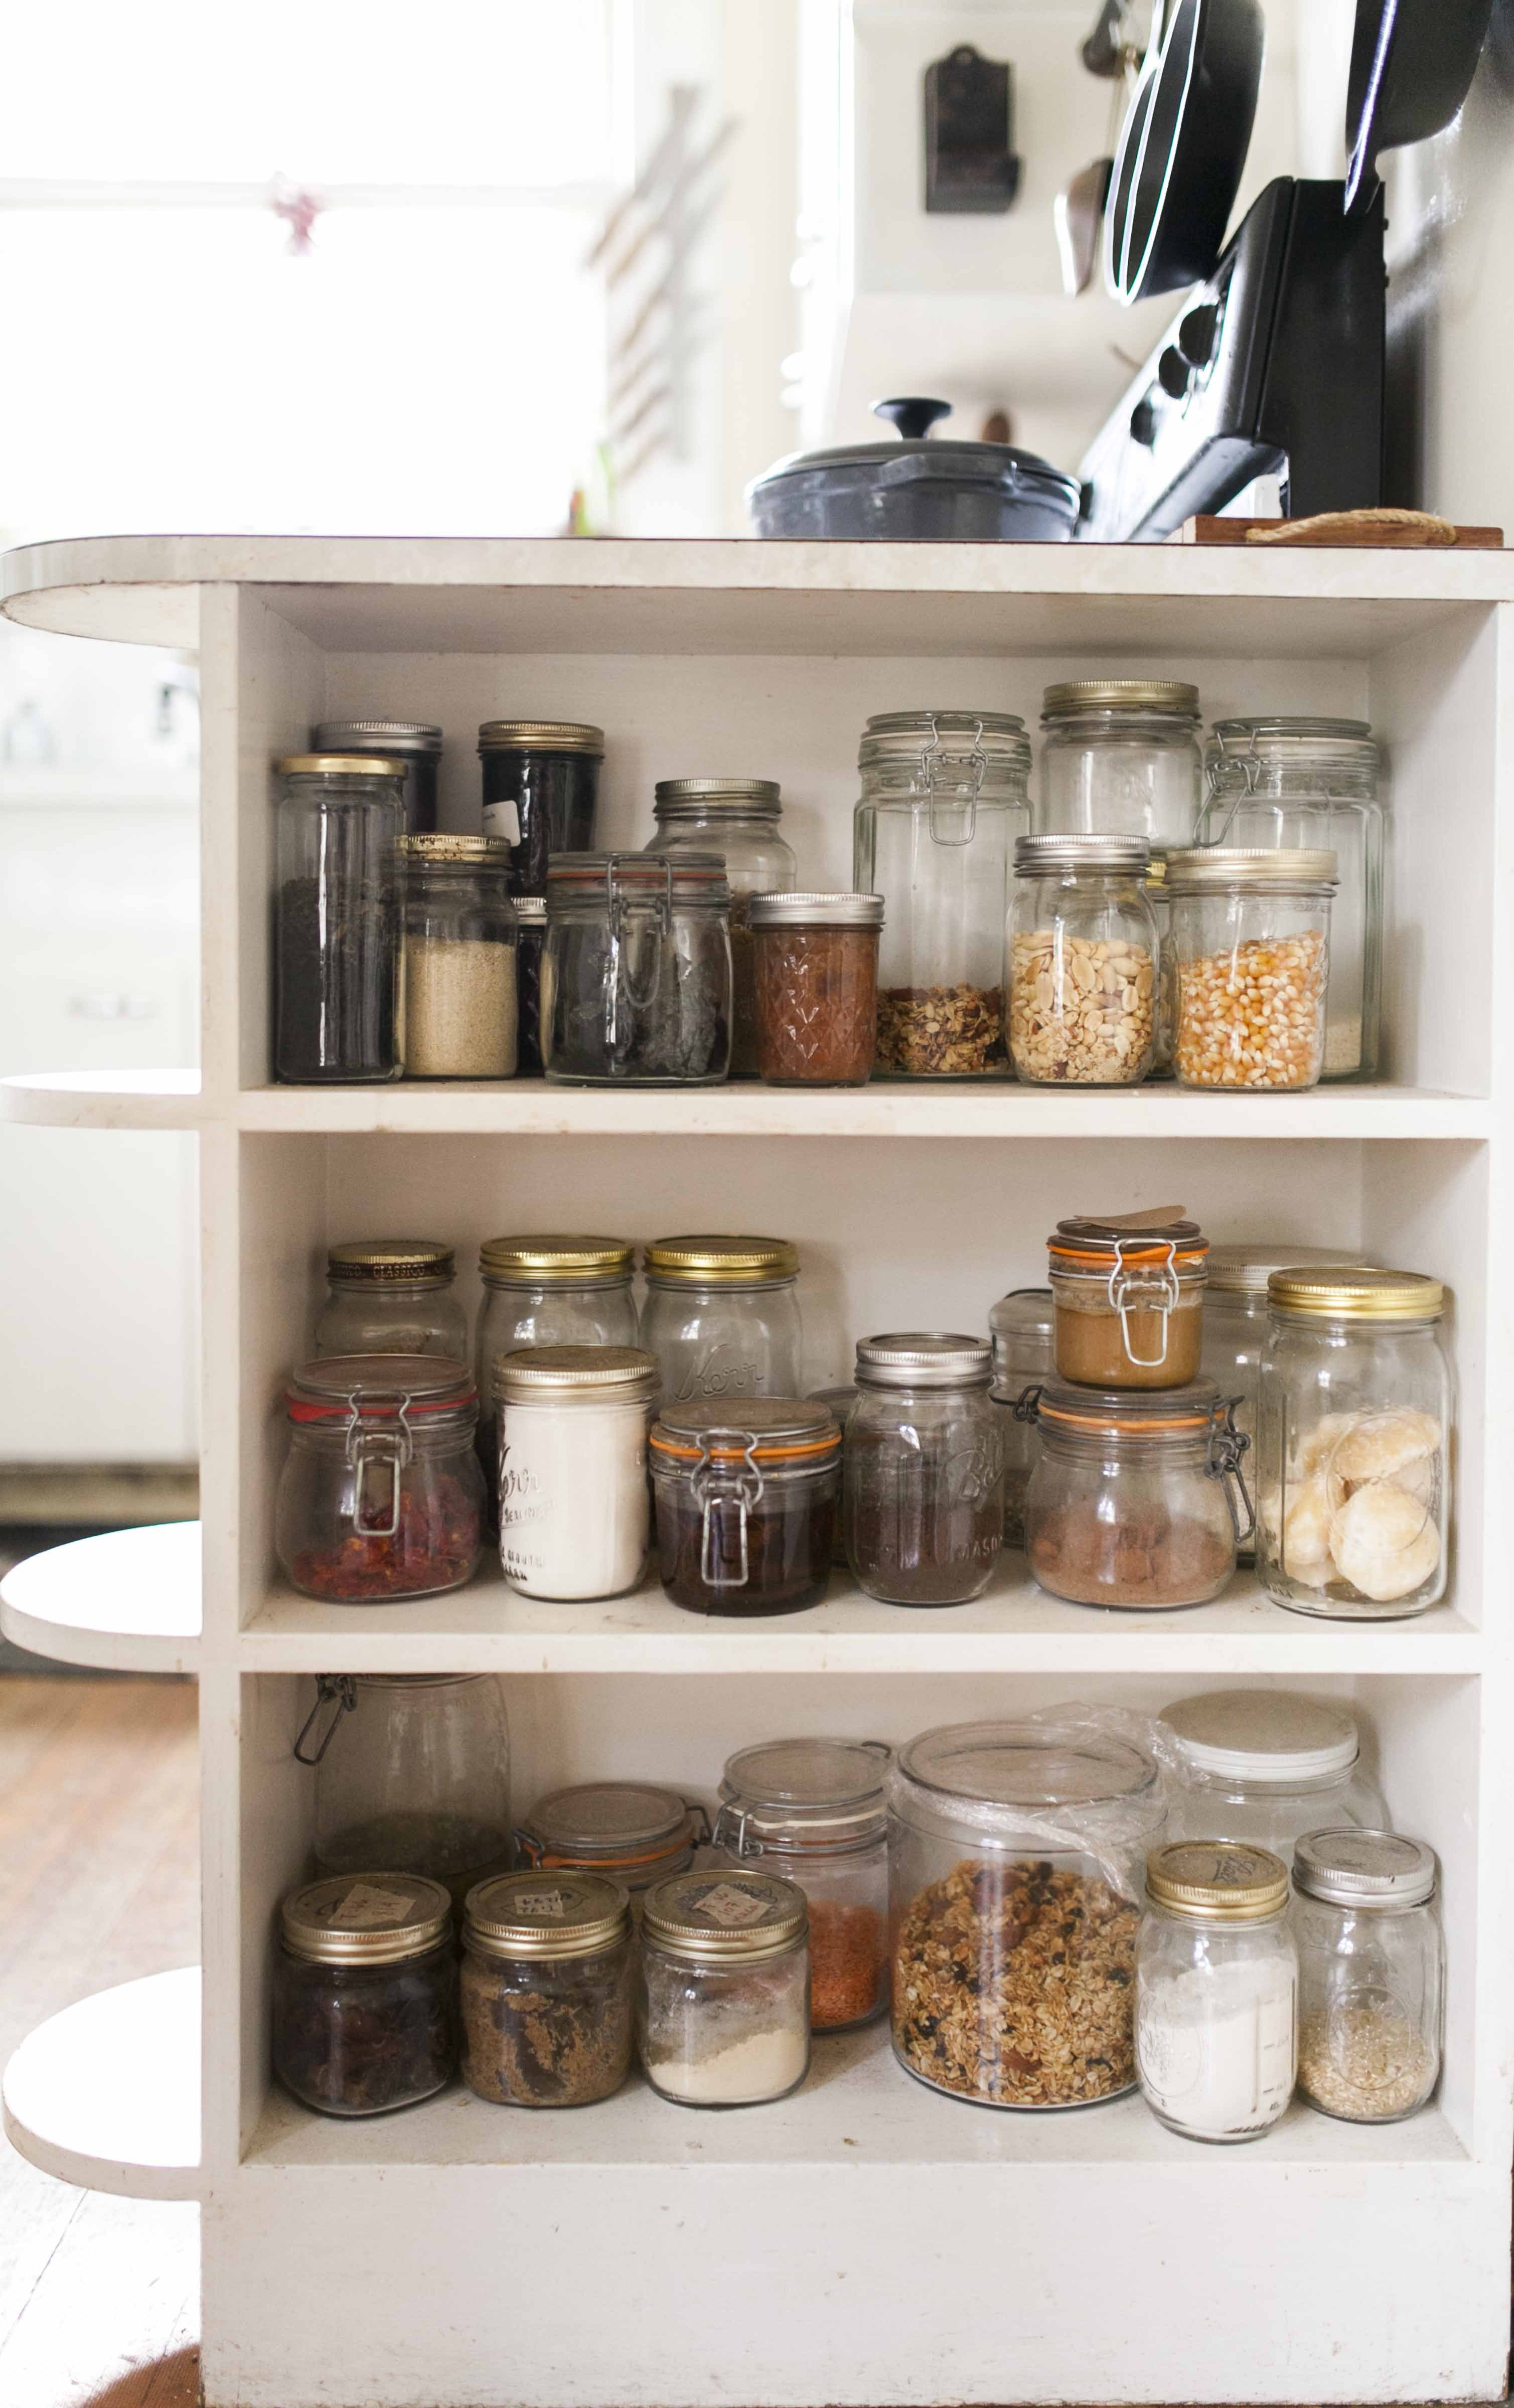 How To Get Rid Of Bugs Mice Rodents - Pantry   Kitchn